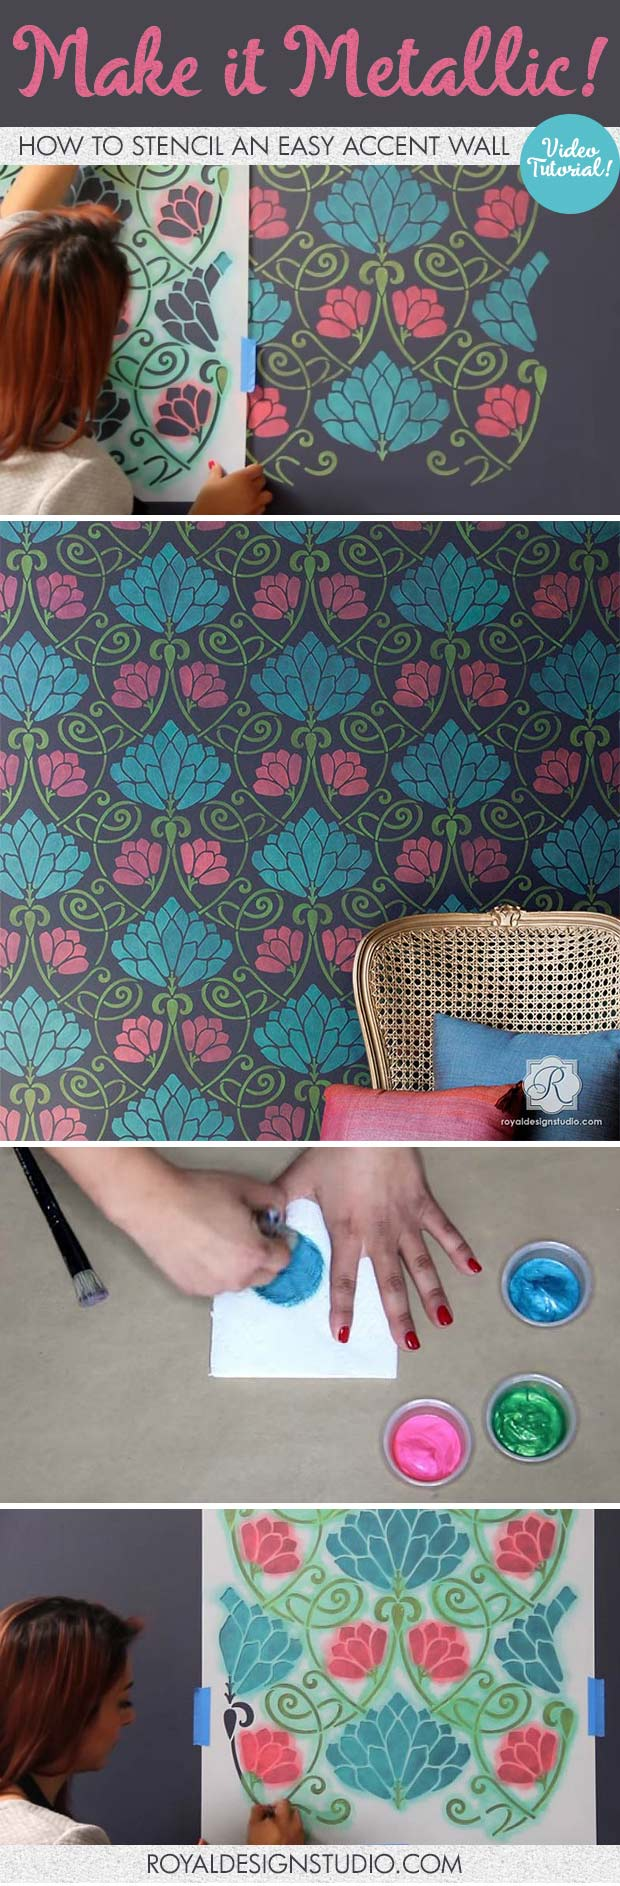 VIDEO Tutorial - How to Stencil an Easy Accent Wall with Metallic Paint - Flower Wall Stencils by Royal Design Studio